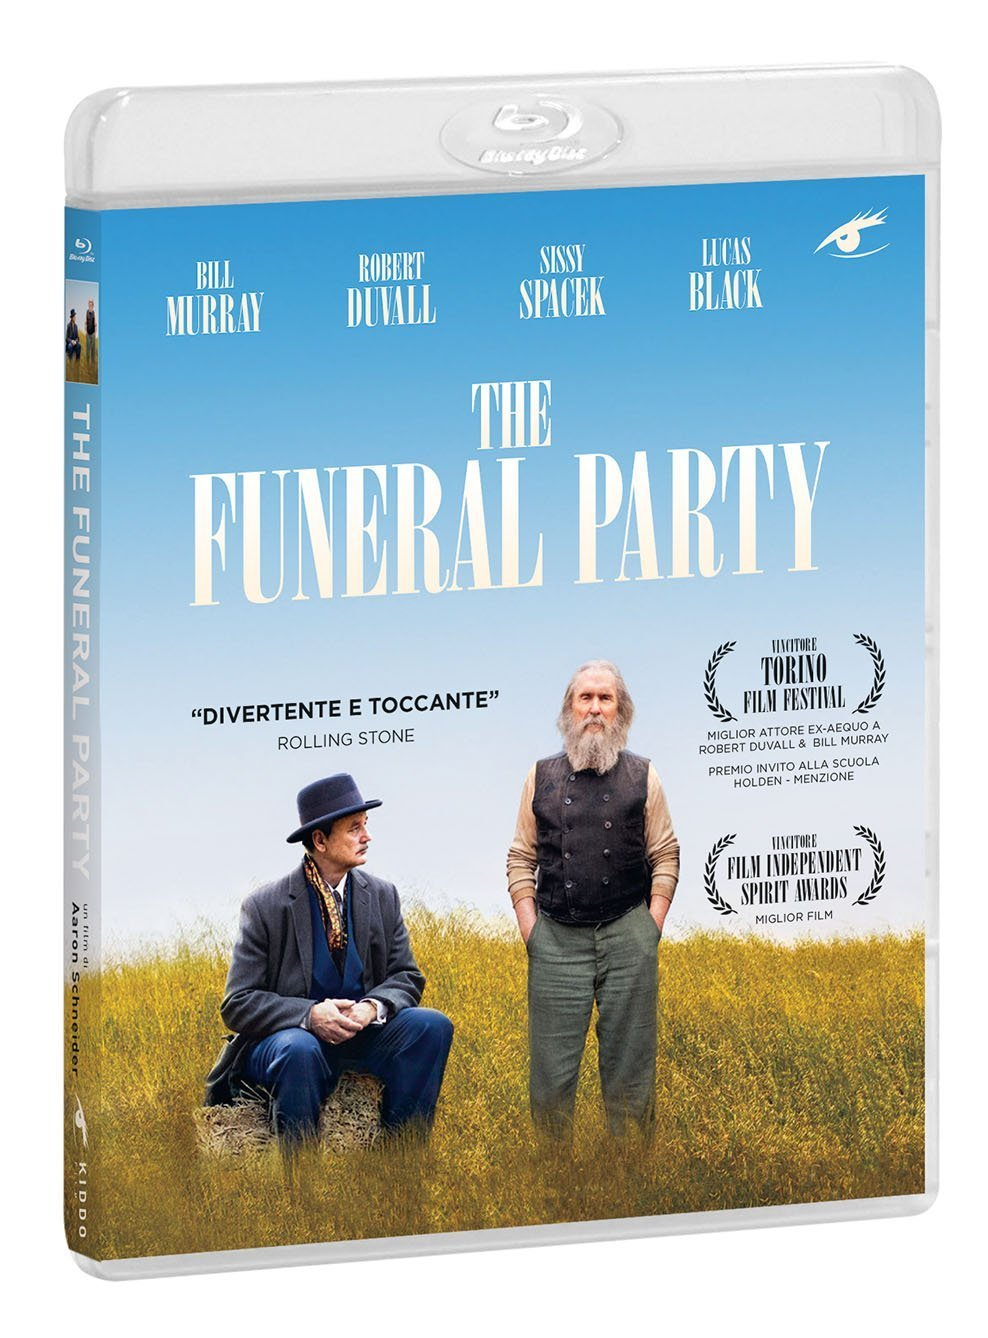 THE FUNERAL PARTY - BLU RAY